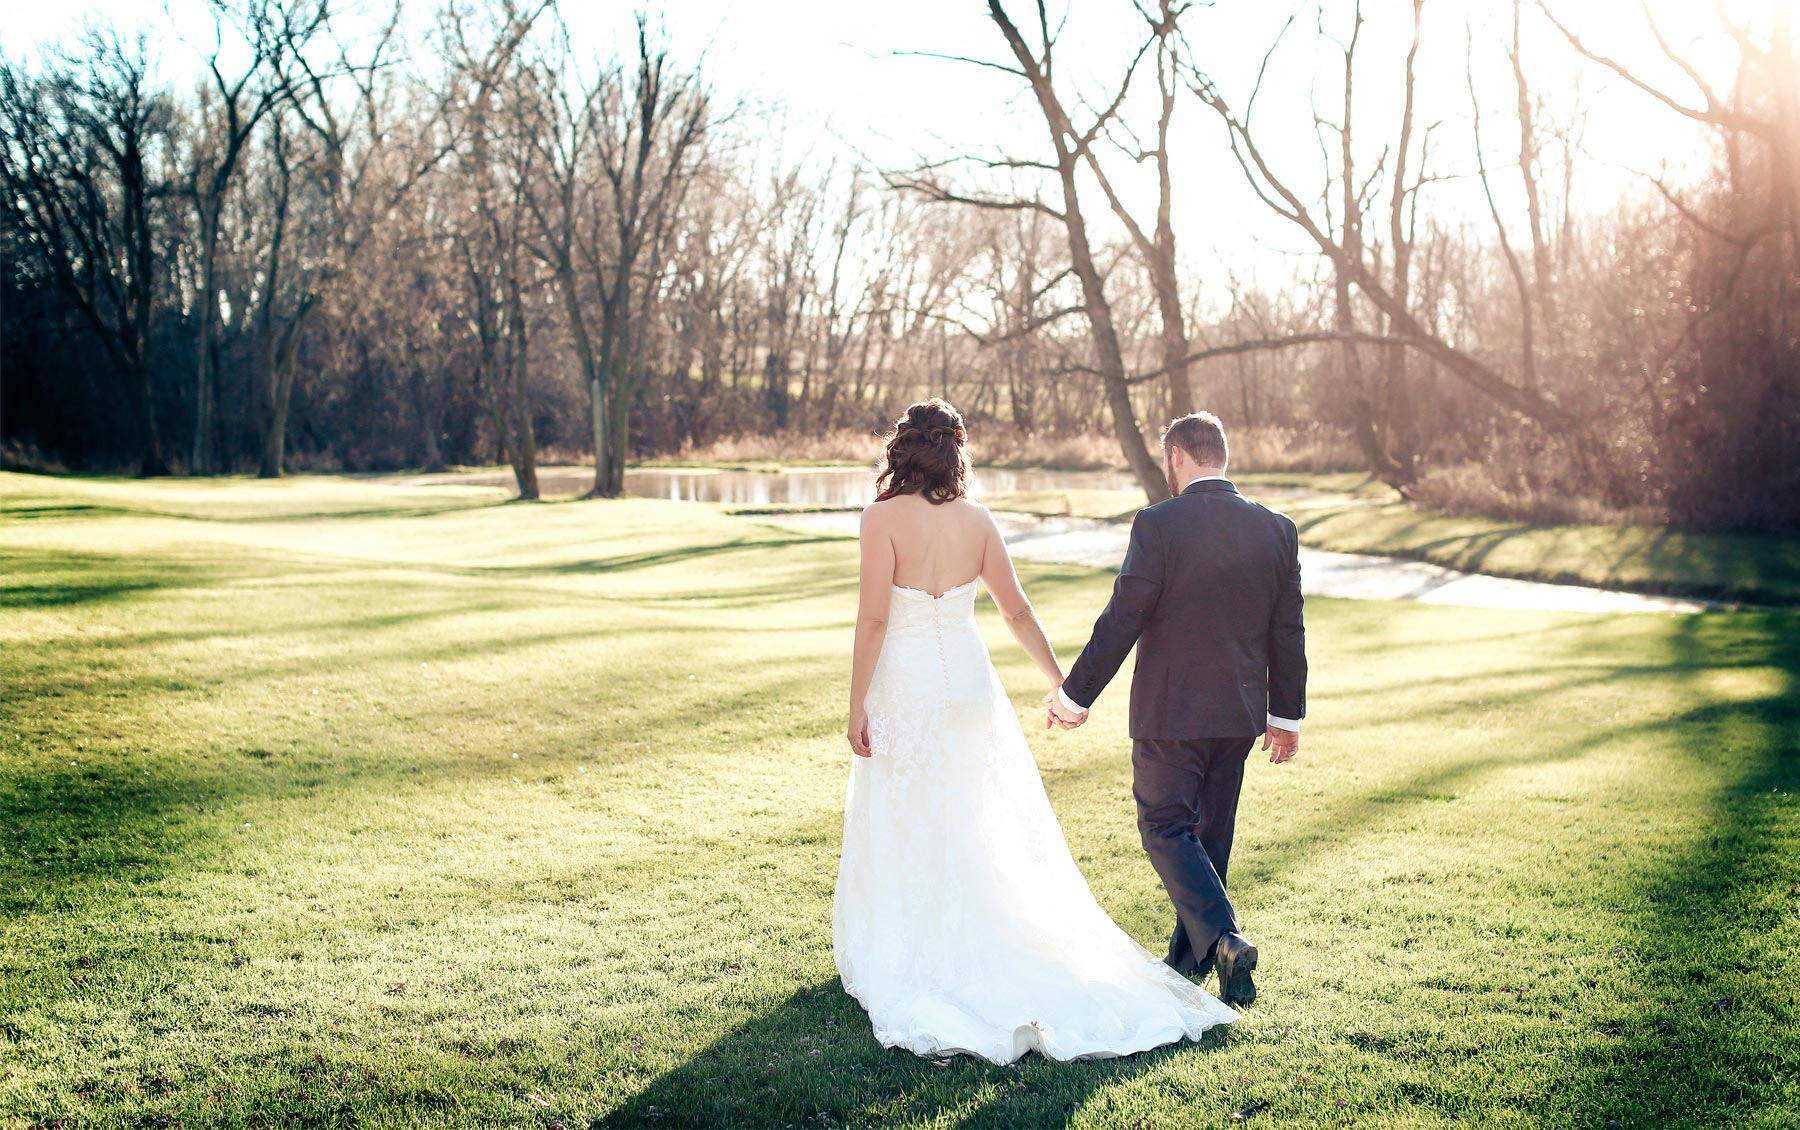 09-Minneapolis-Minnesota-Wedding-Photography-by-Vick-Photography-Prior-Lake-Horse-and-Hunt-Club-Rustic-Woods-Sarah-and-Steve.jpg